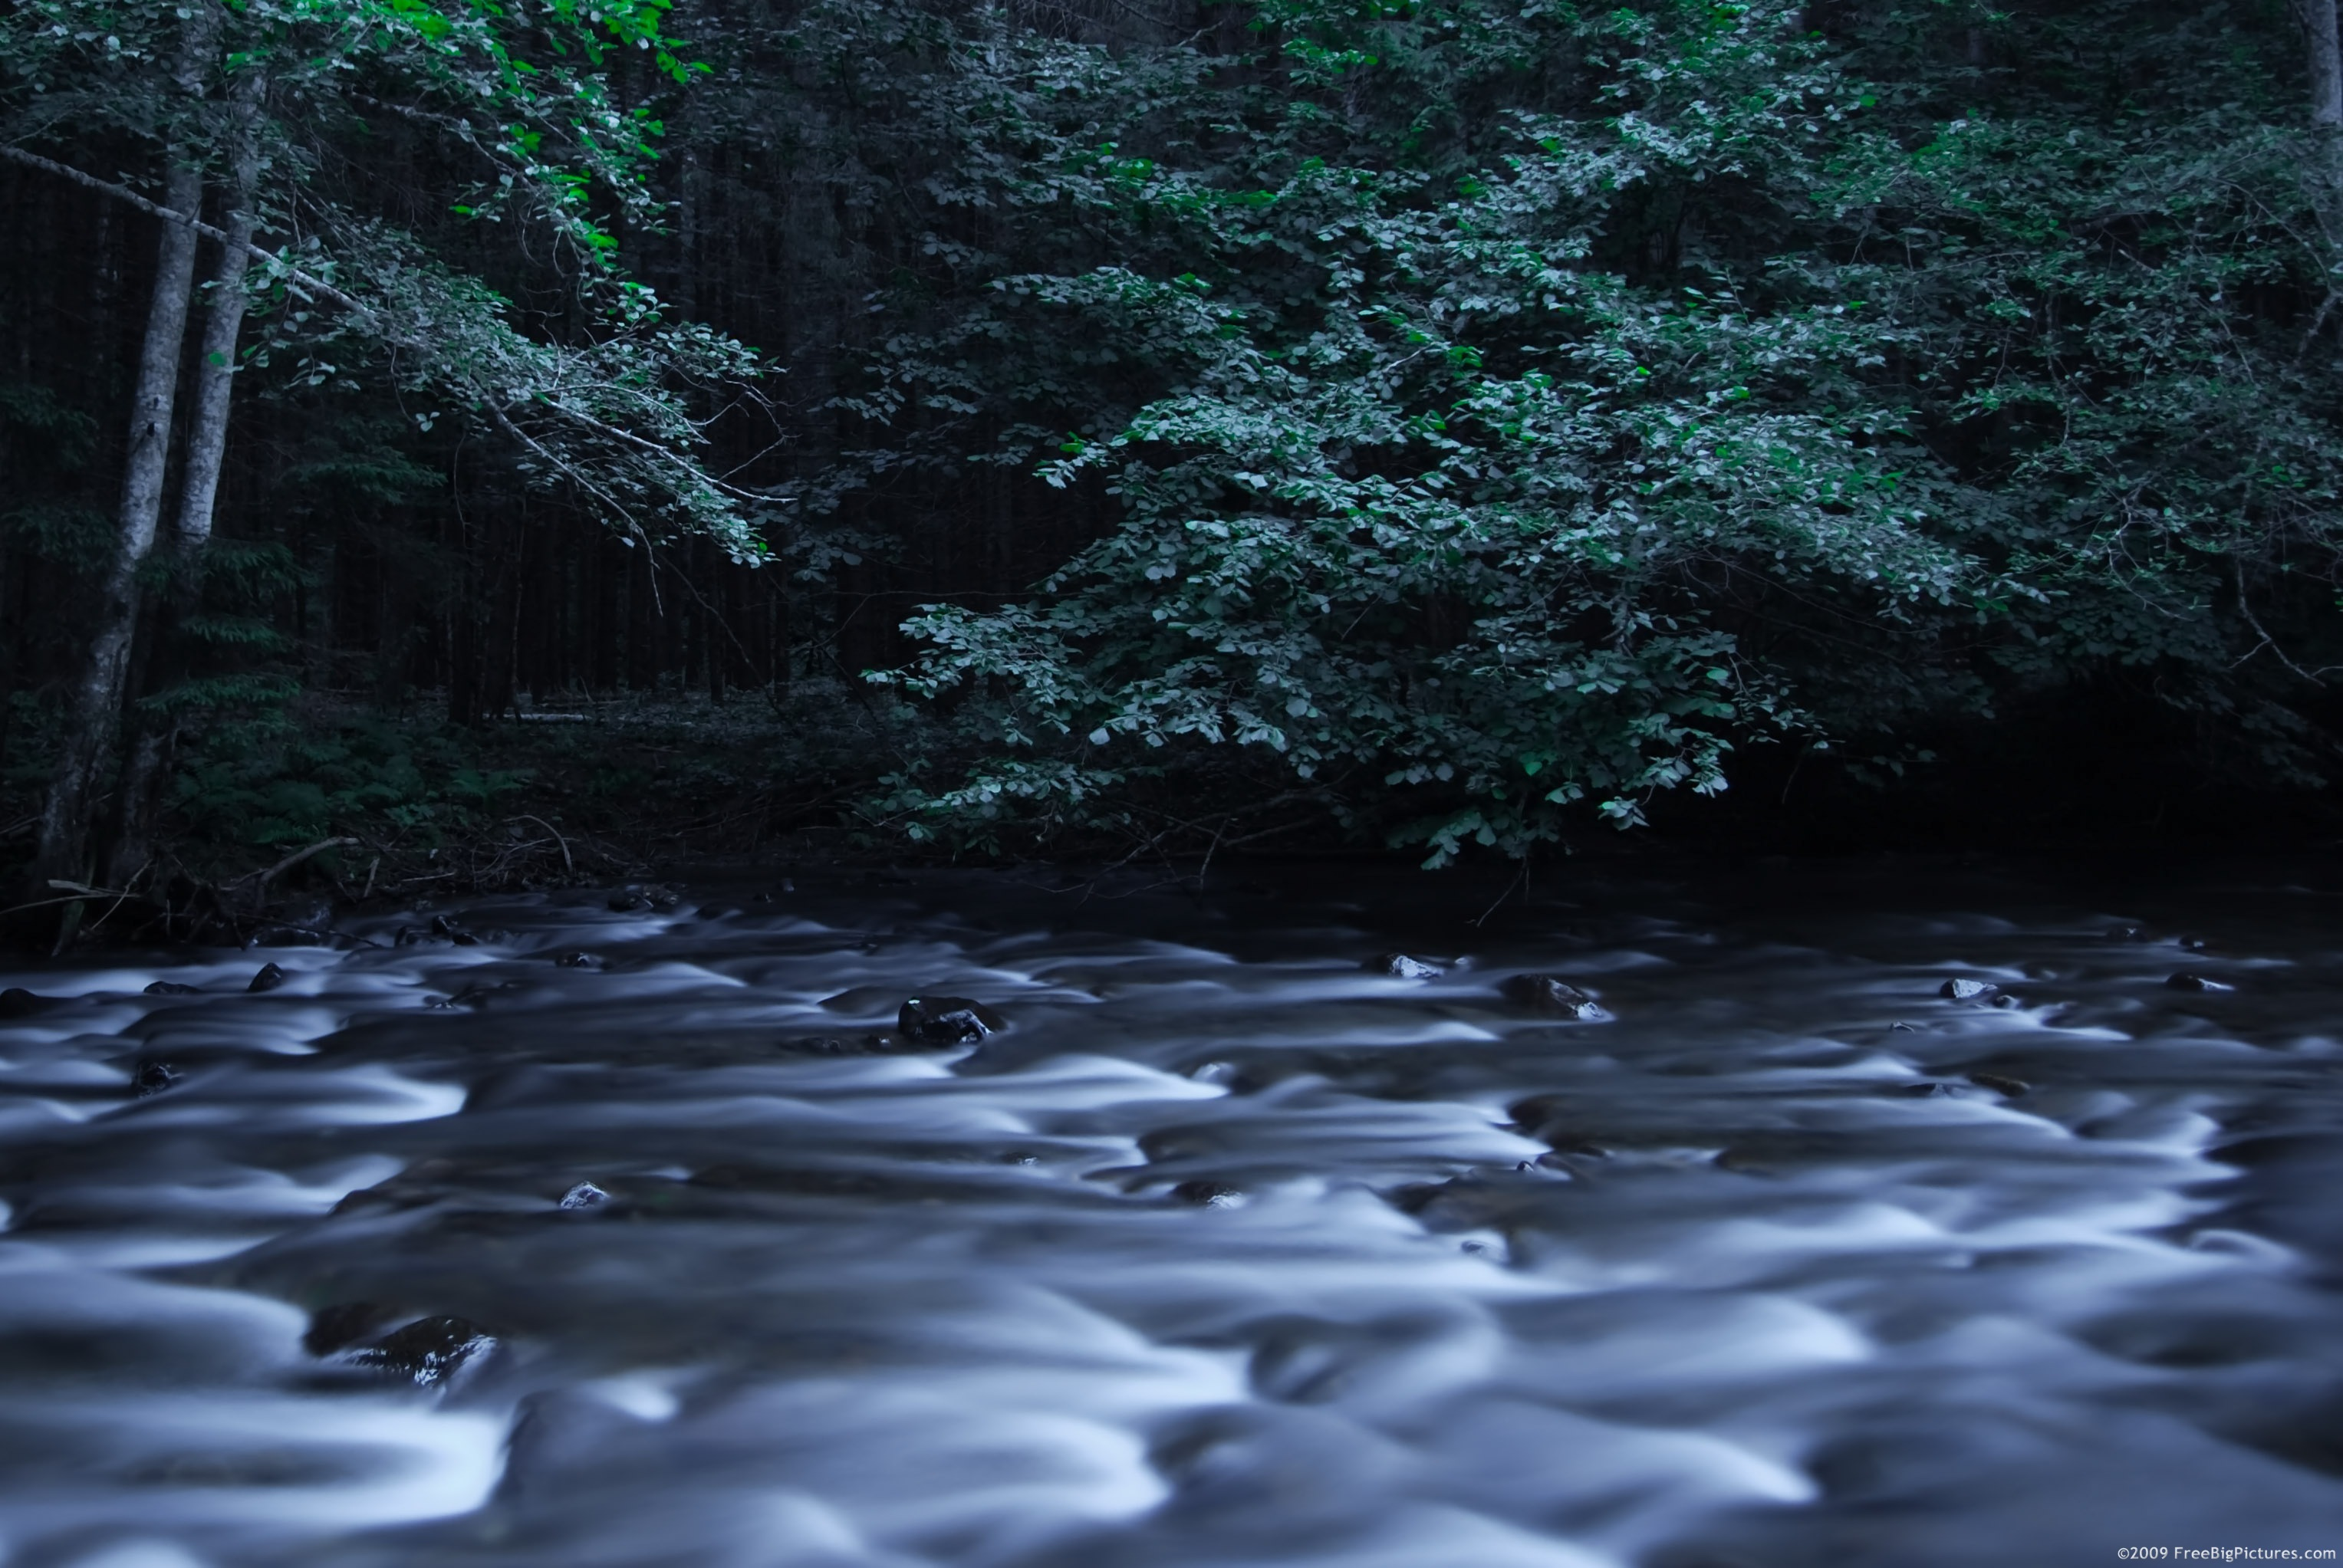 River images in night is an interesting picture free to download